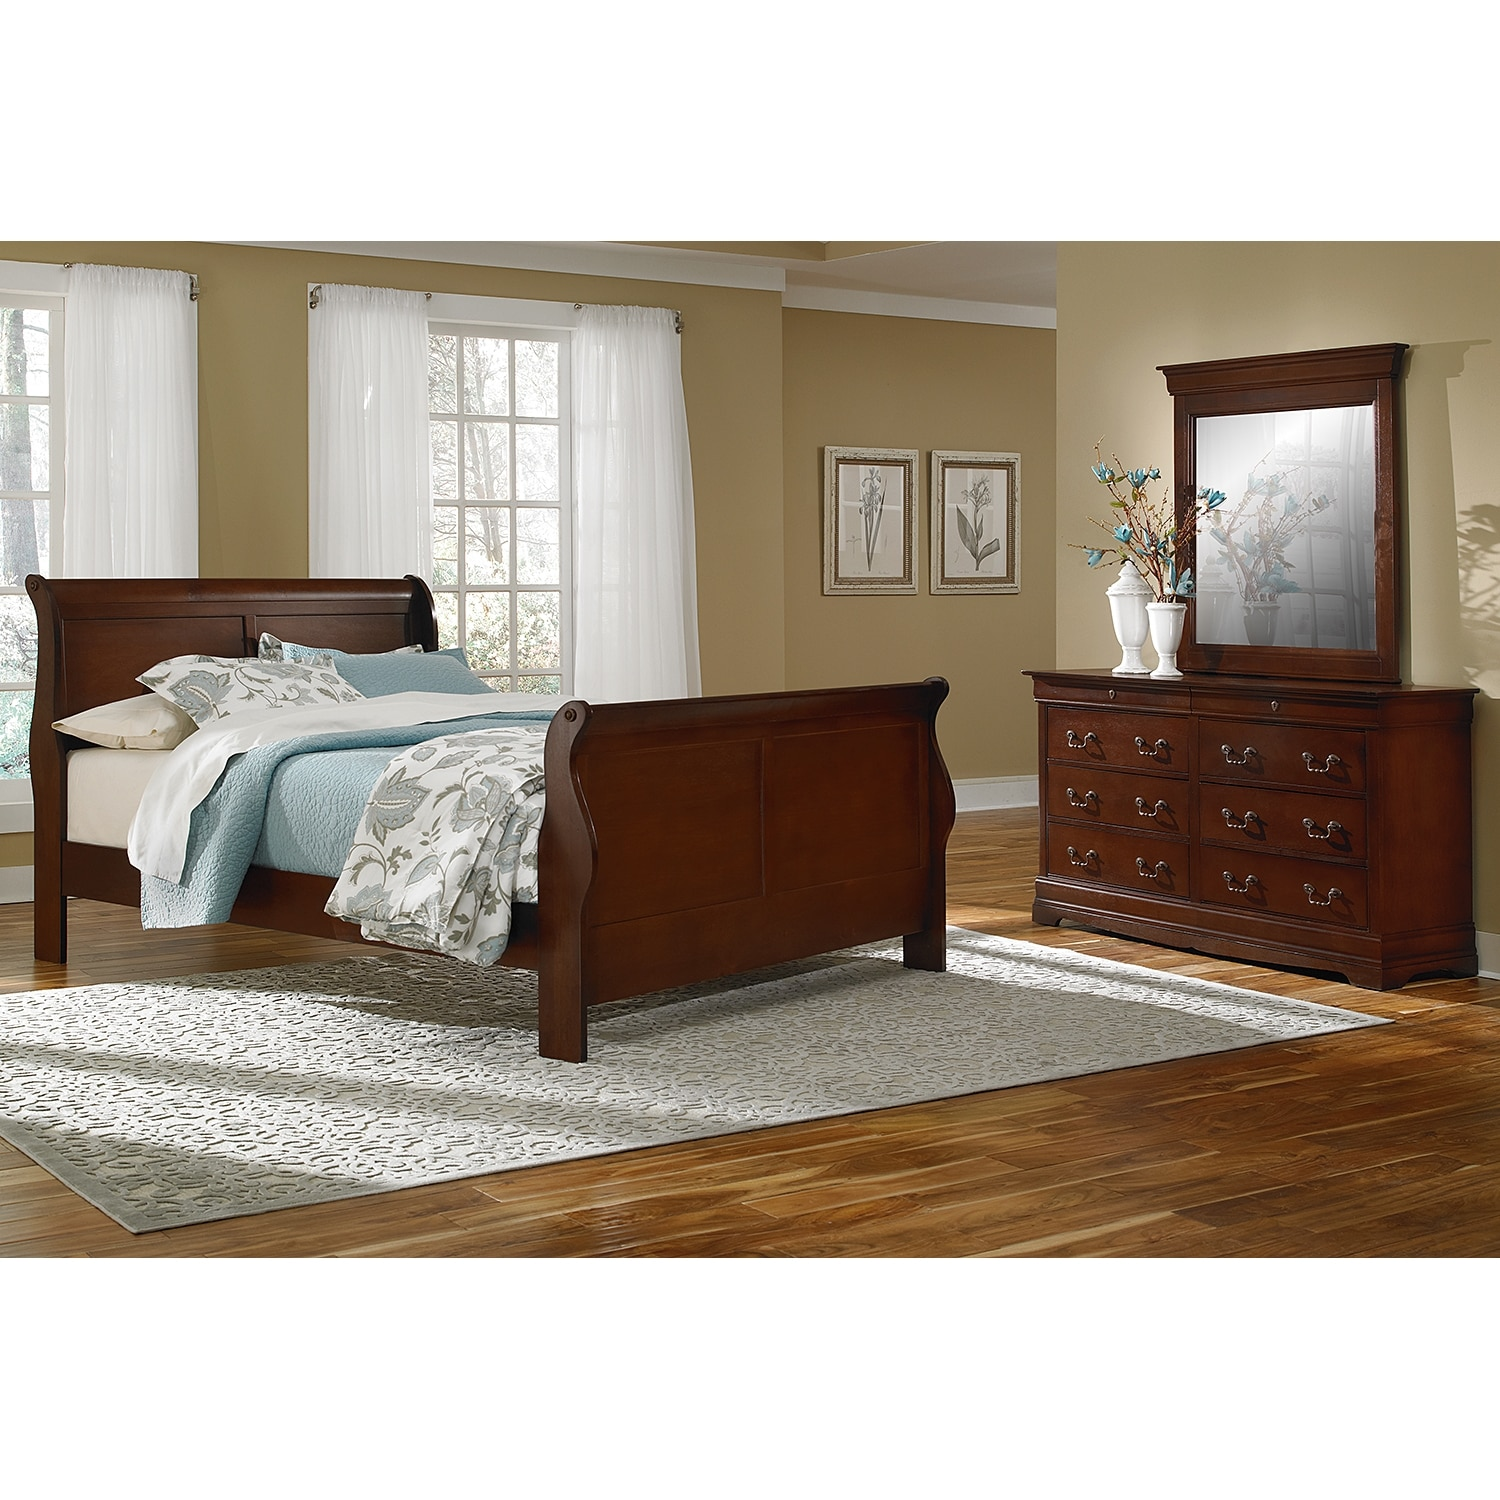 Neo classic 5 piece king bedroom set cherry american for 5 piece bedroom set